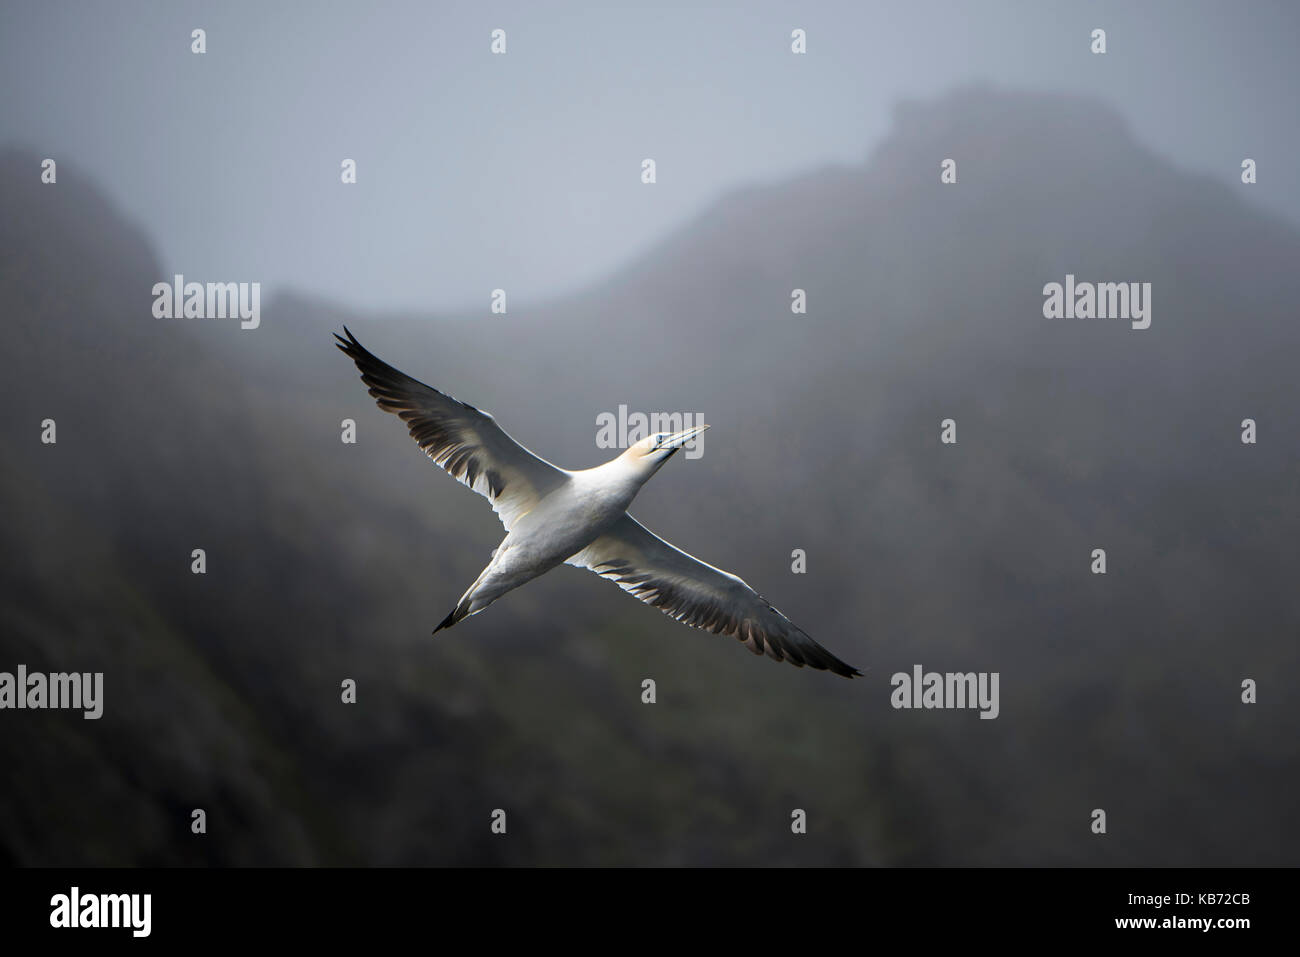 Northern Gannets (Morus bassanus) flying in misty mountains, Norway, More og Romsdal, Runde island - Stock Image